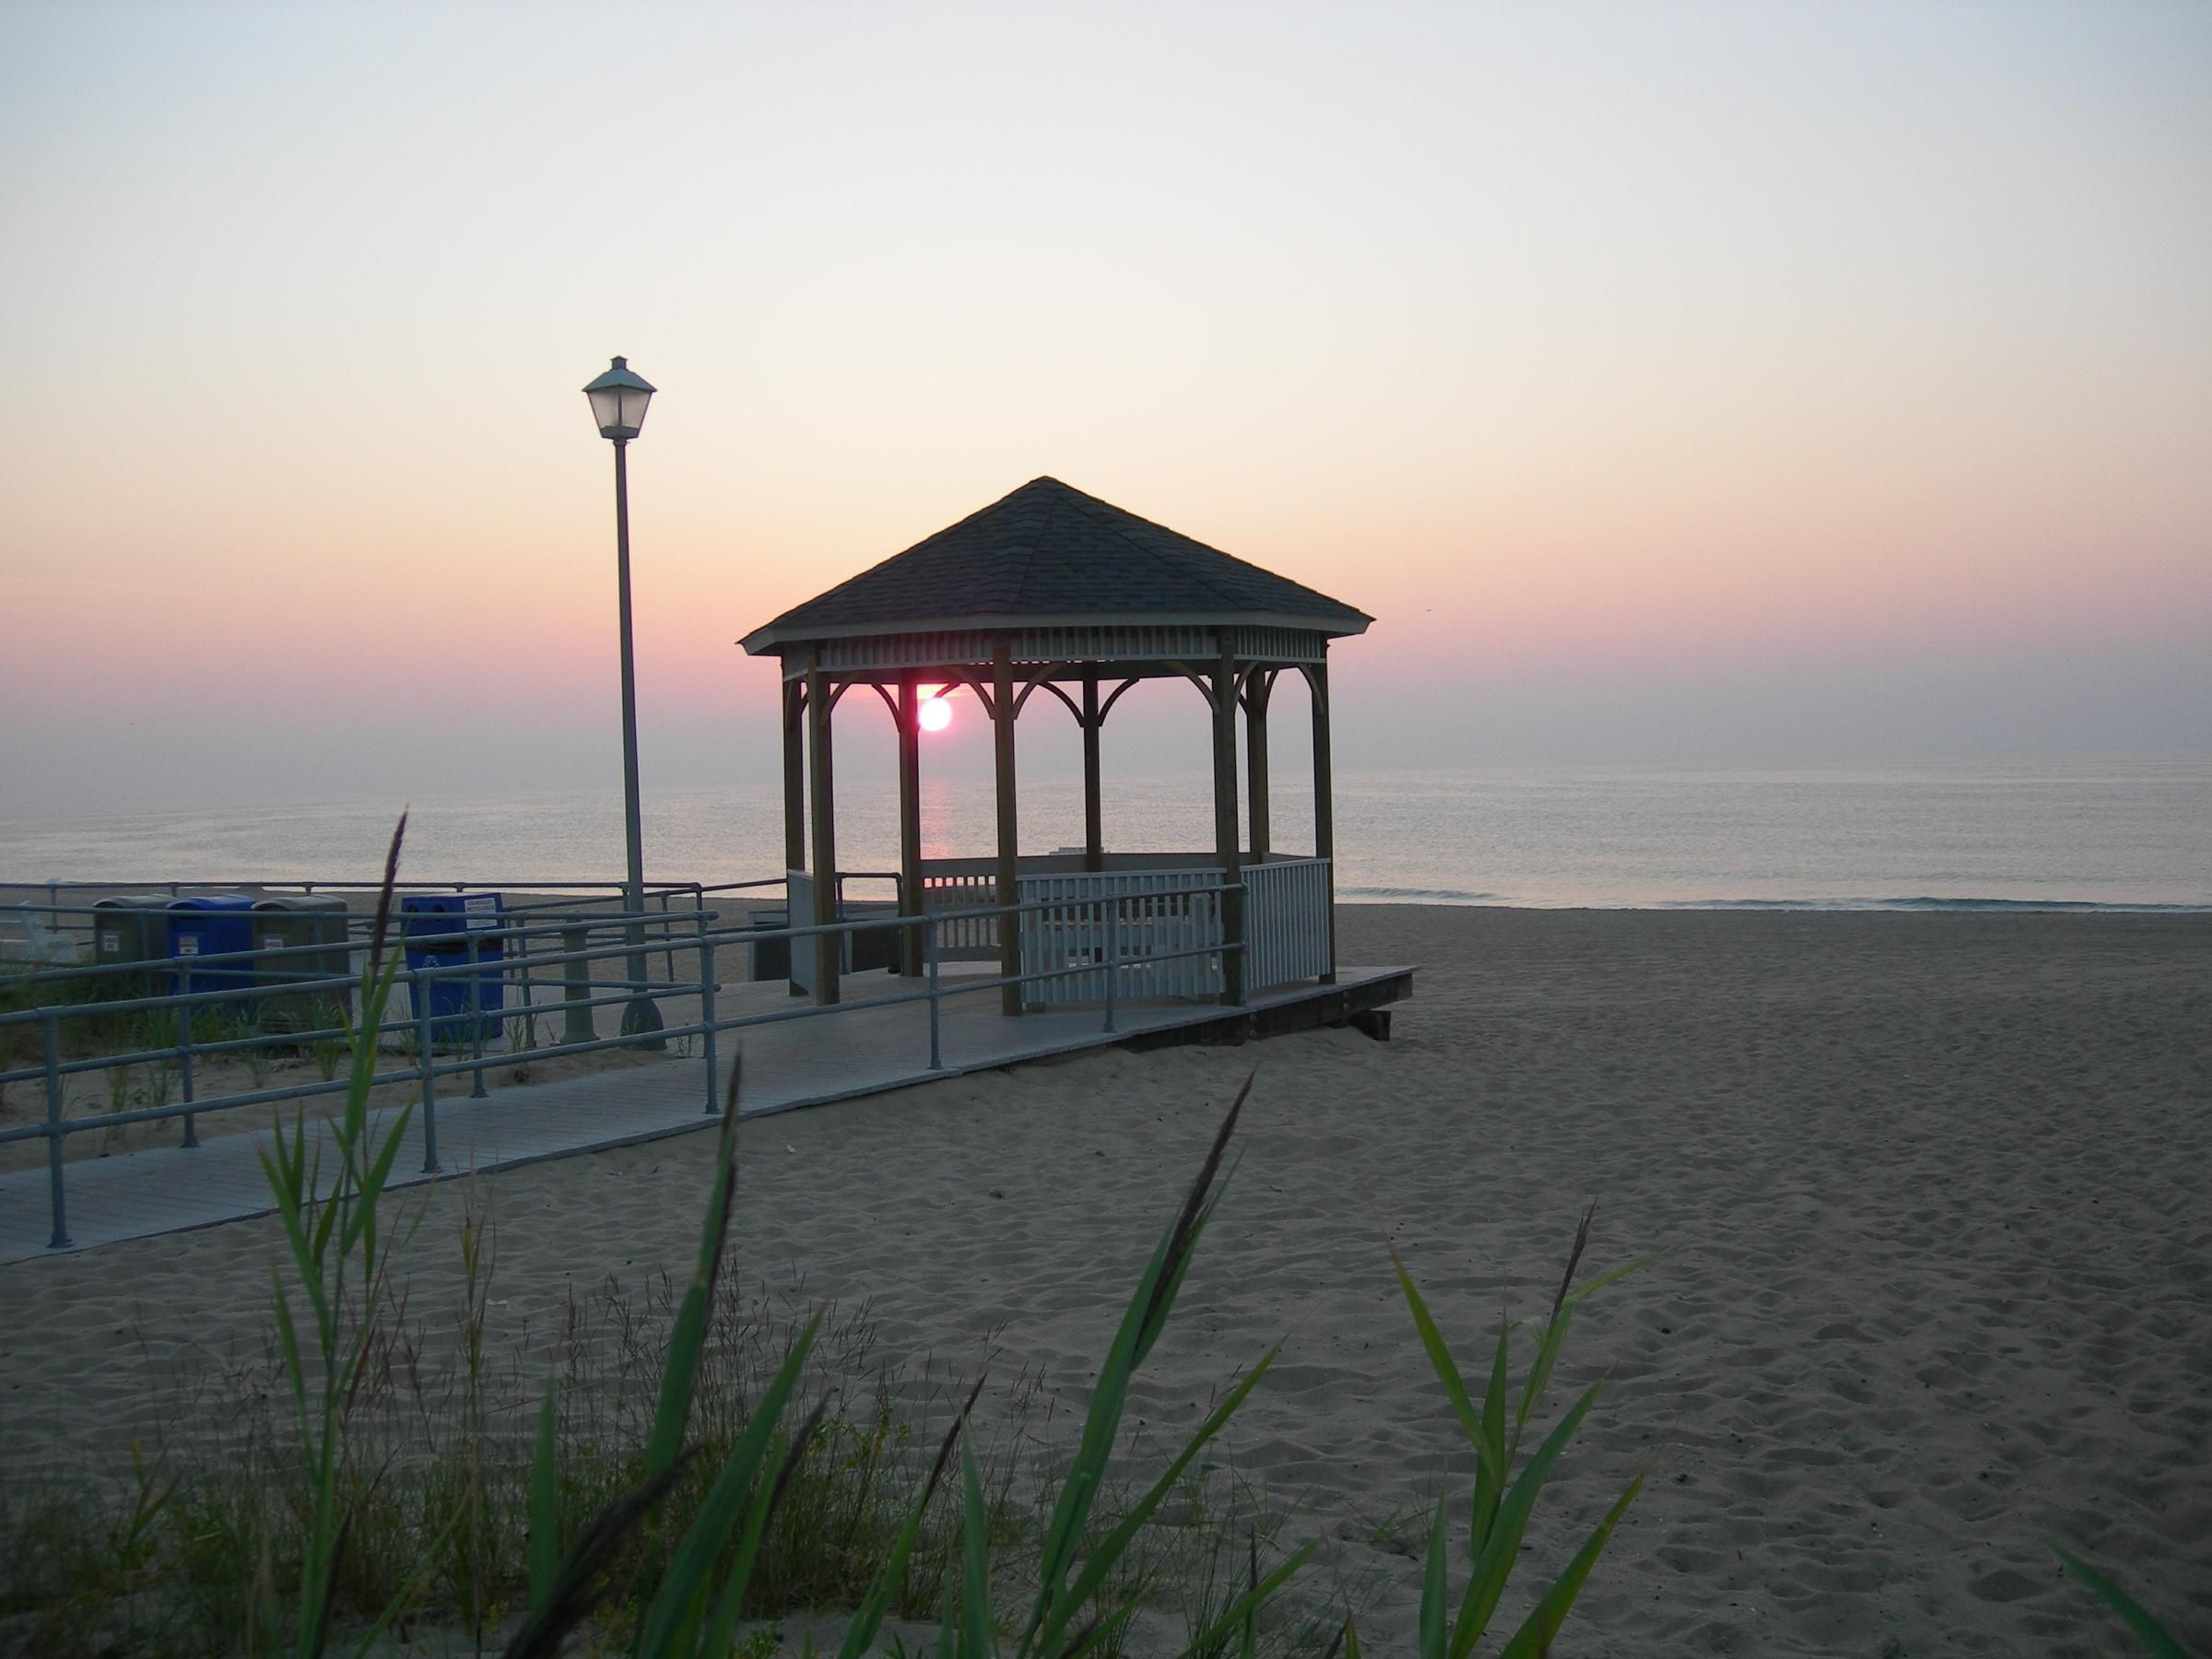 sea girt Find your next sea girt home with century 21 real estate our mobile app and website are complete with the latest mls listings of homes for sale - from new homes for sale, townhouses for sale, and condos for sale to land for sale and foreclosed homes for sale search for a home that meets your unique needs by narrowing results down by price, size, location, and more.